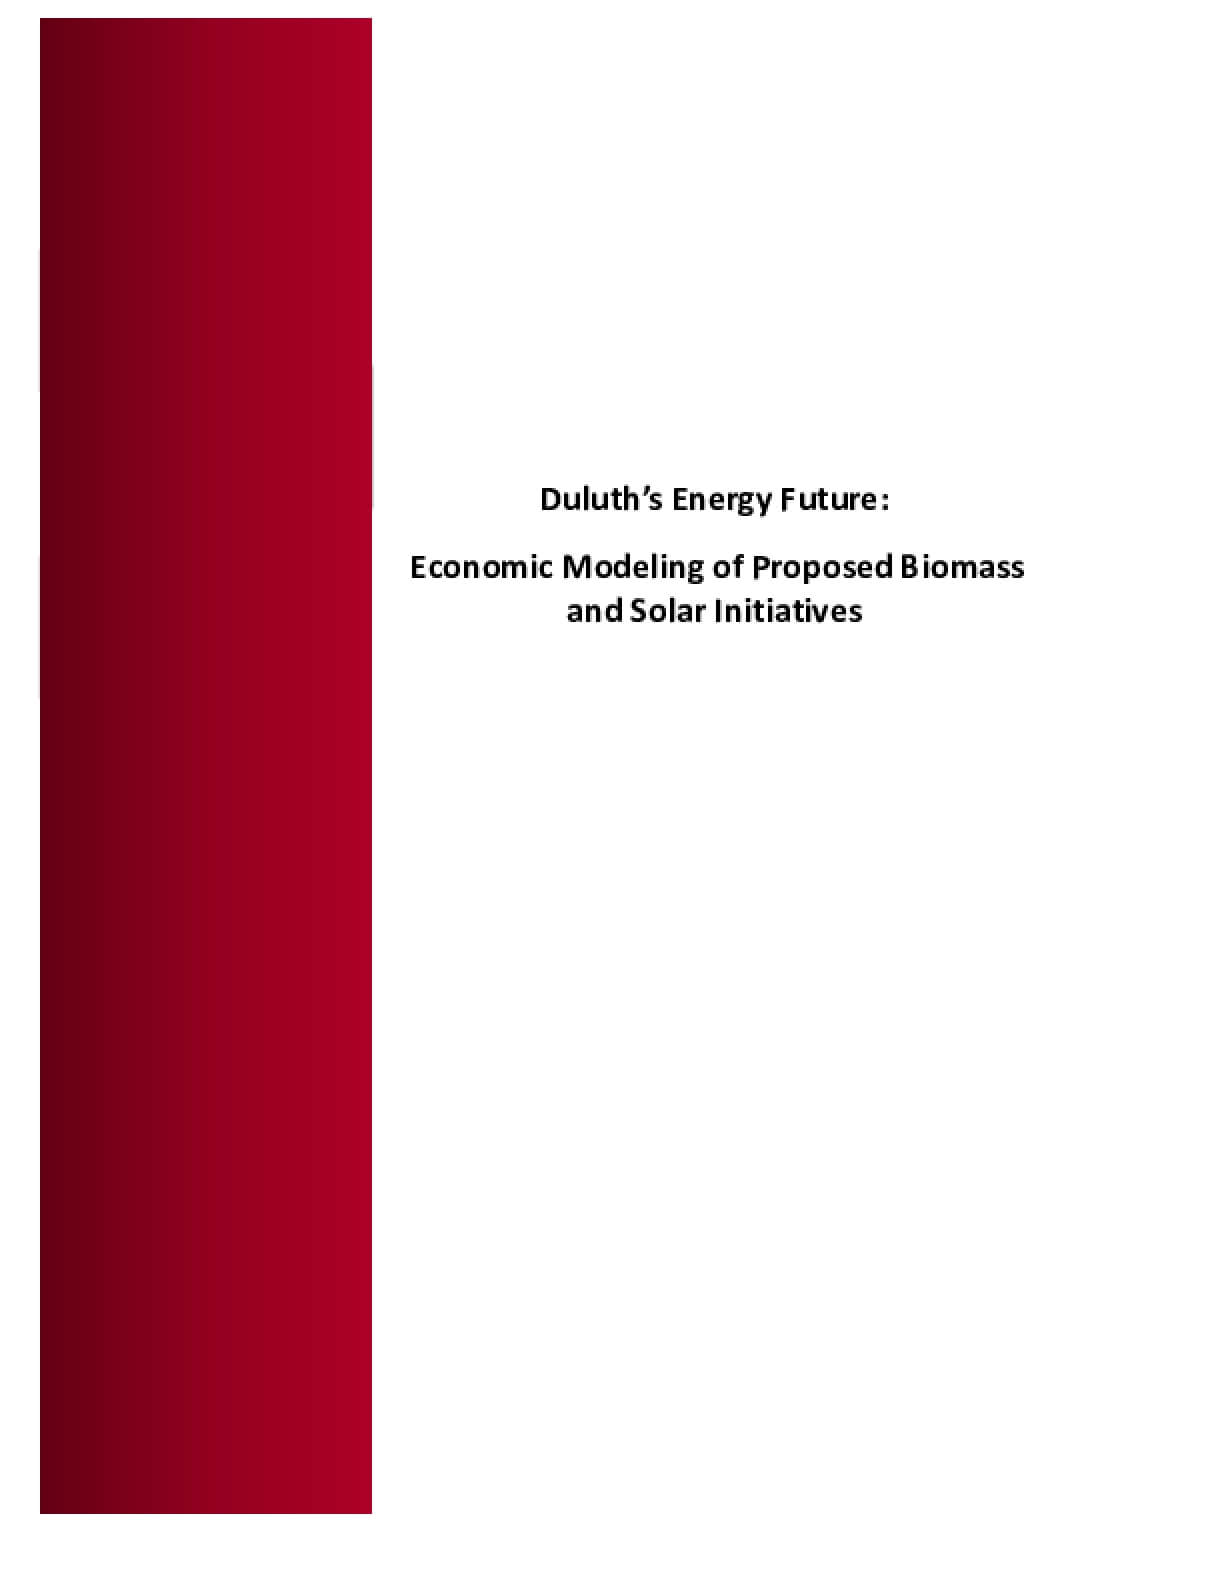 Duluth 's Energy Future: Economic Modeling  of Proposed Biomass  and Solar Initiatives